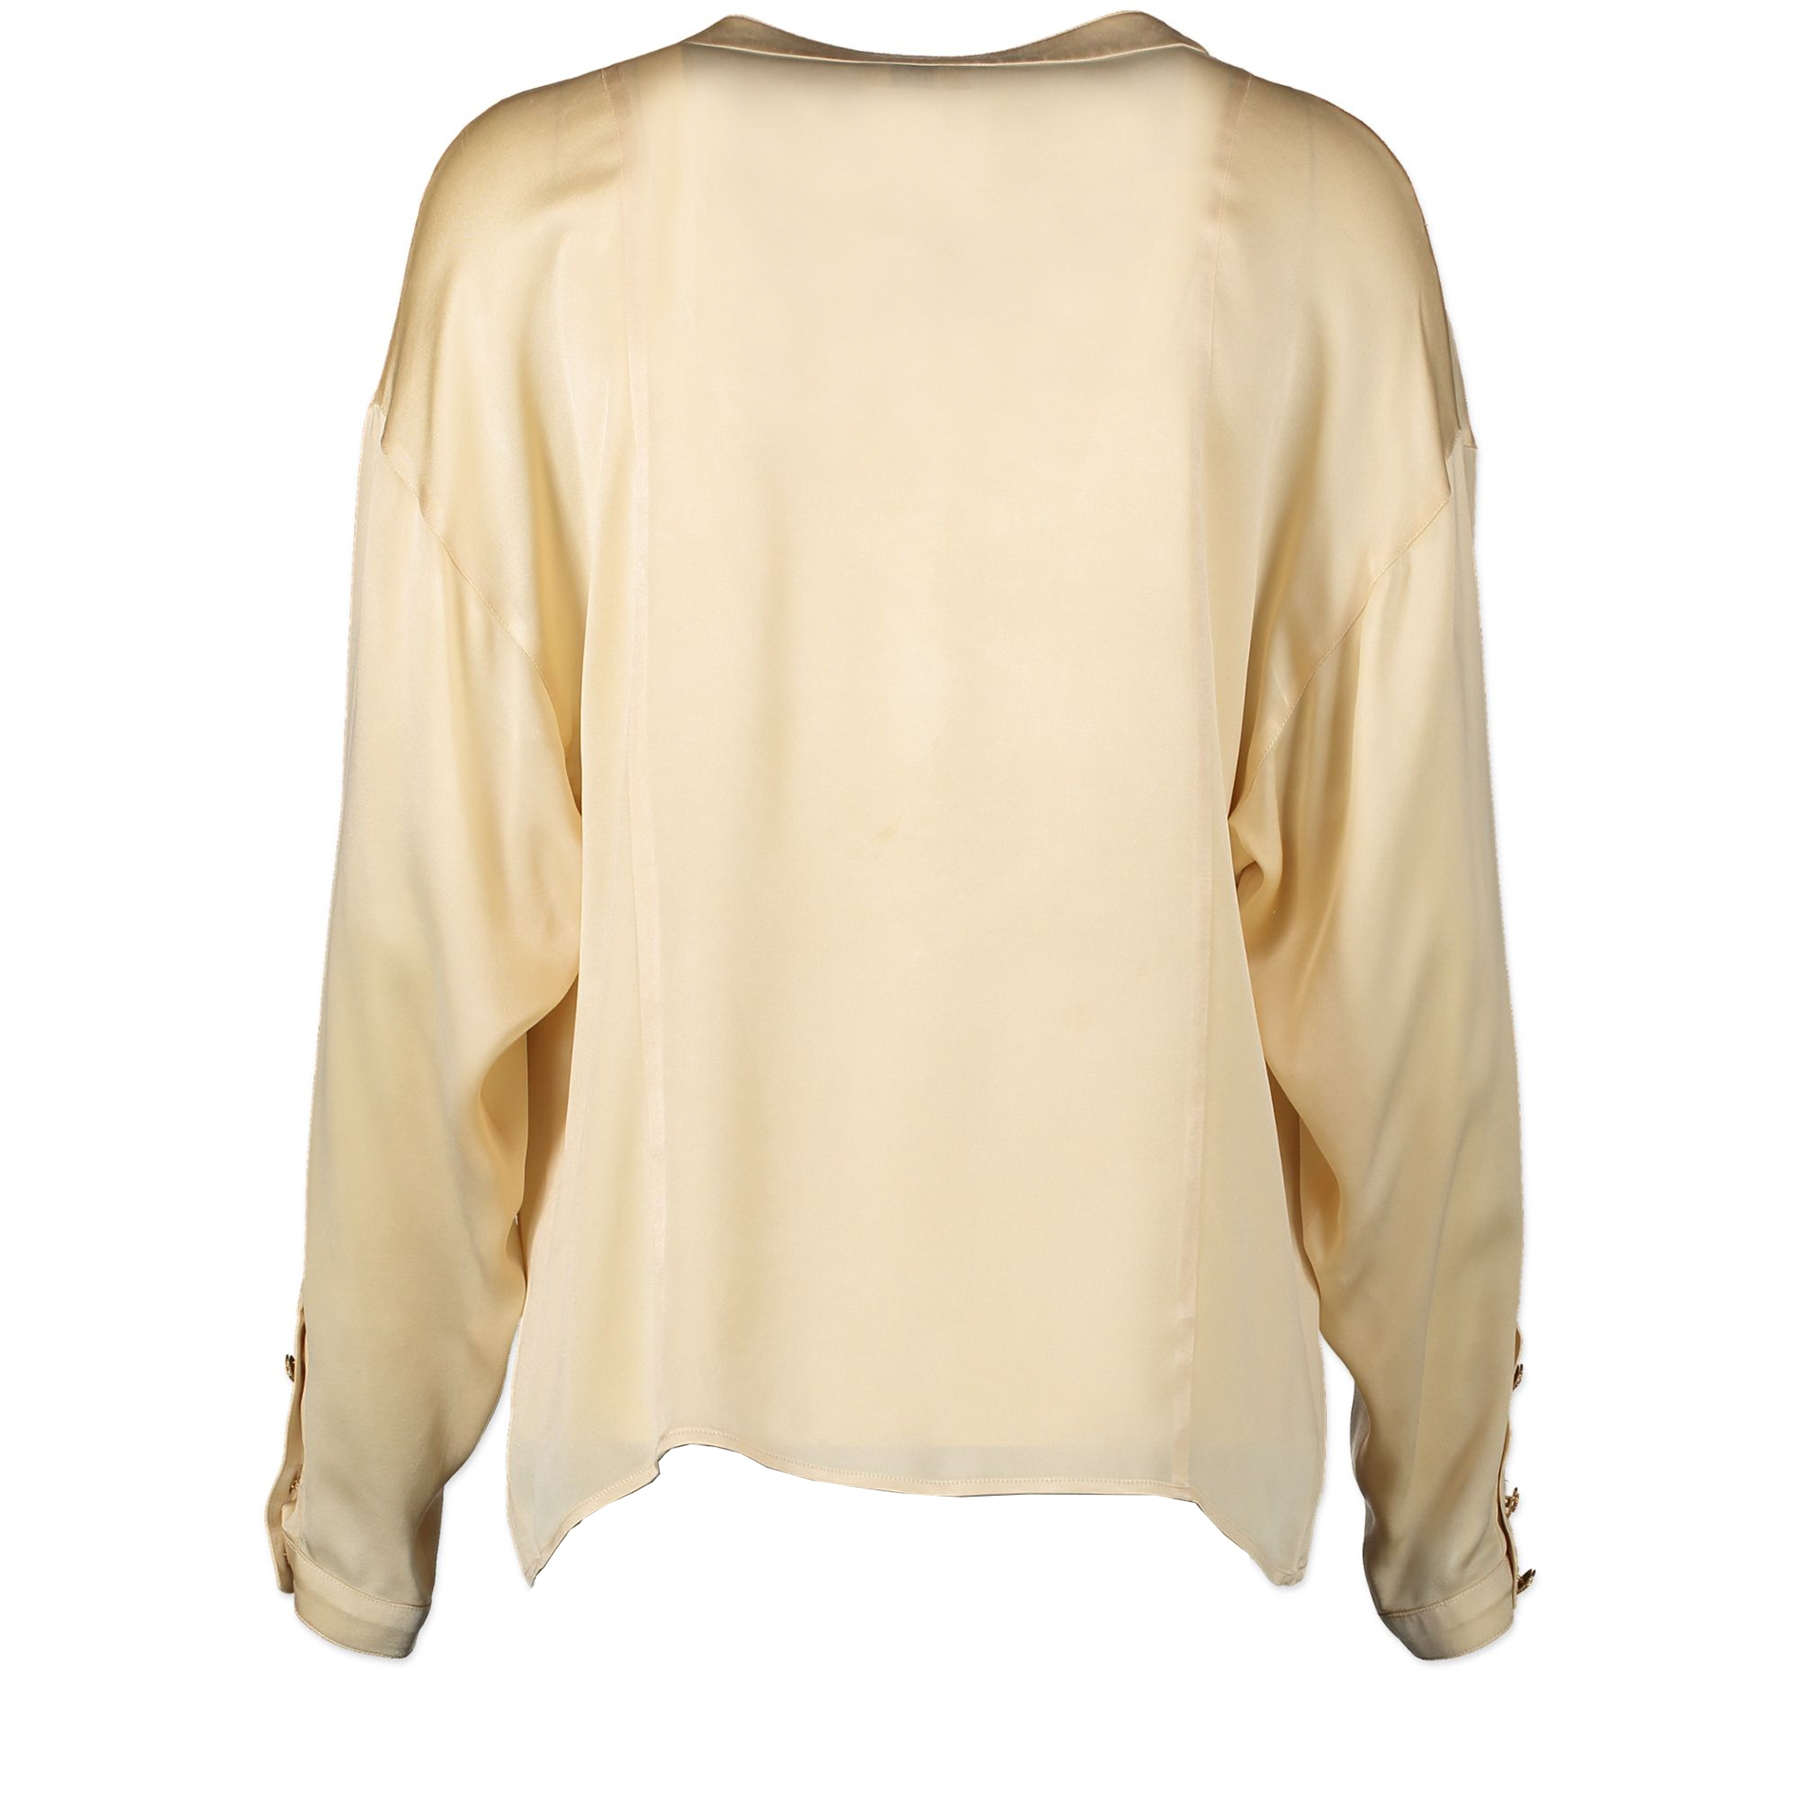 Chanel Silk Cream Blouse